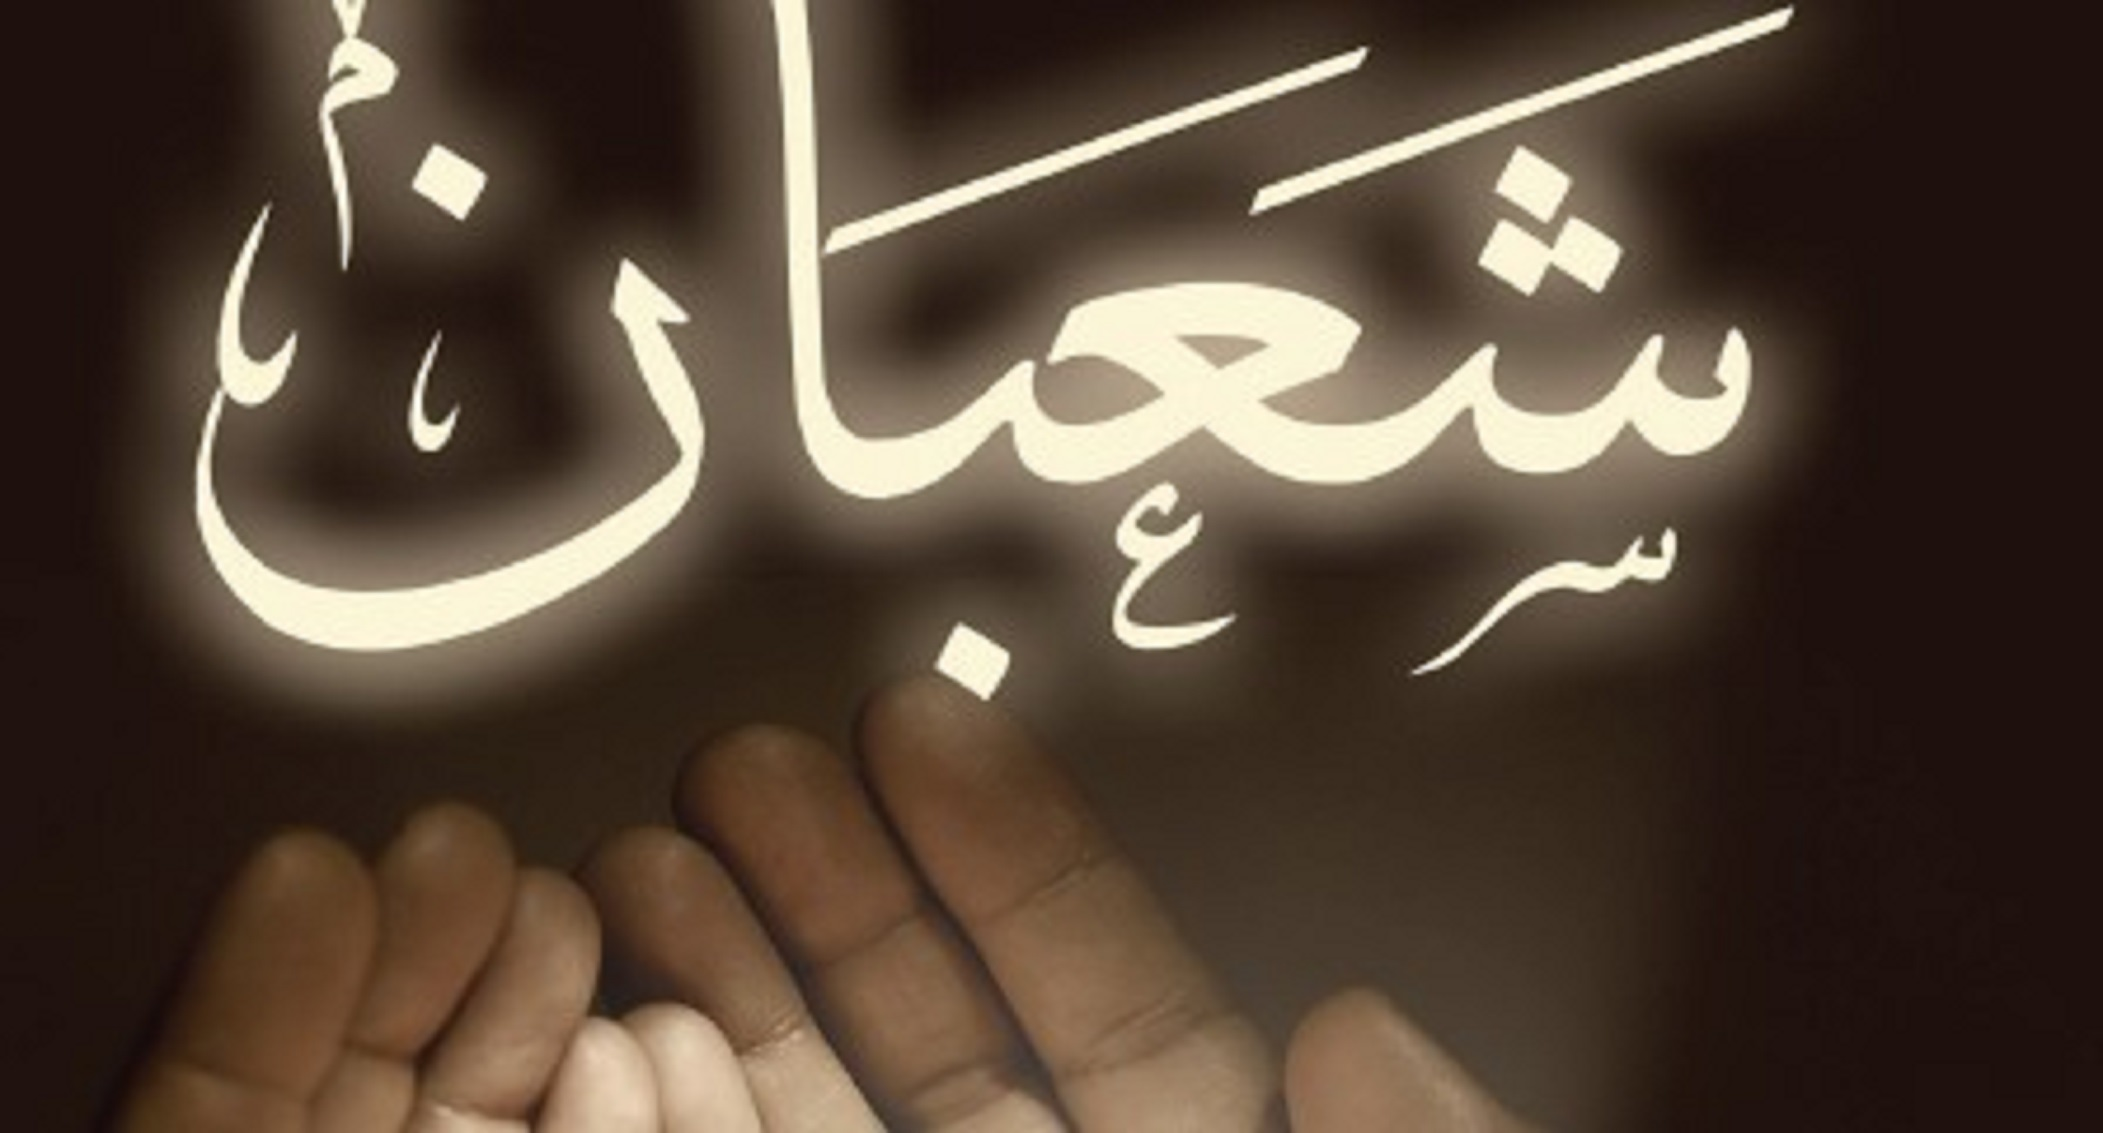 The Month of Shaban-One day workshop(In Urdu)